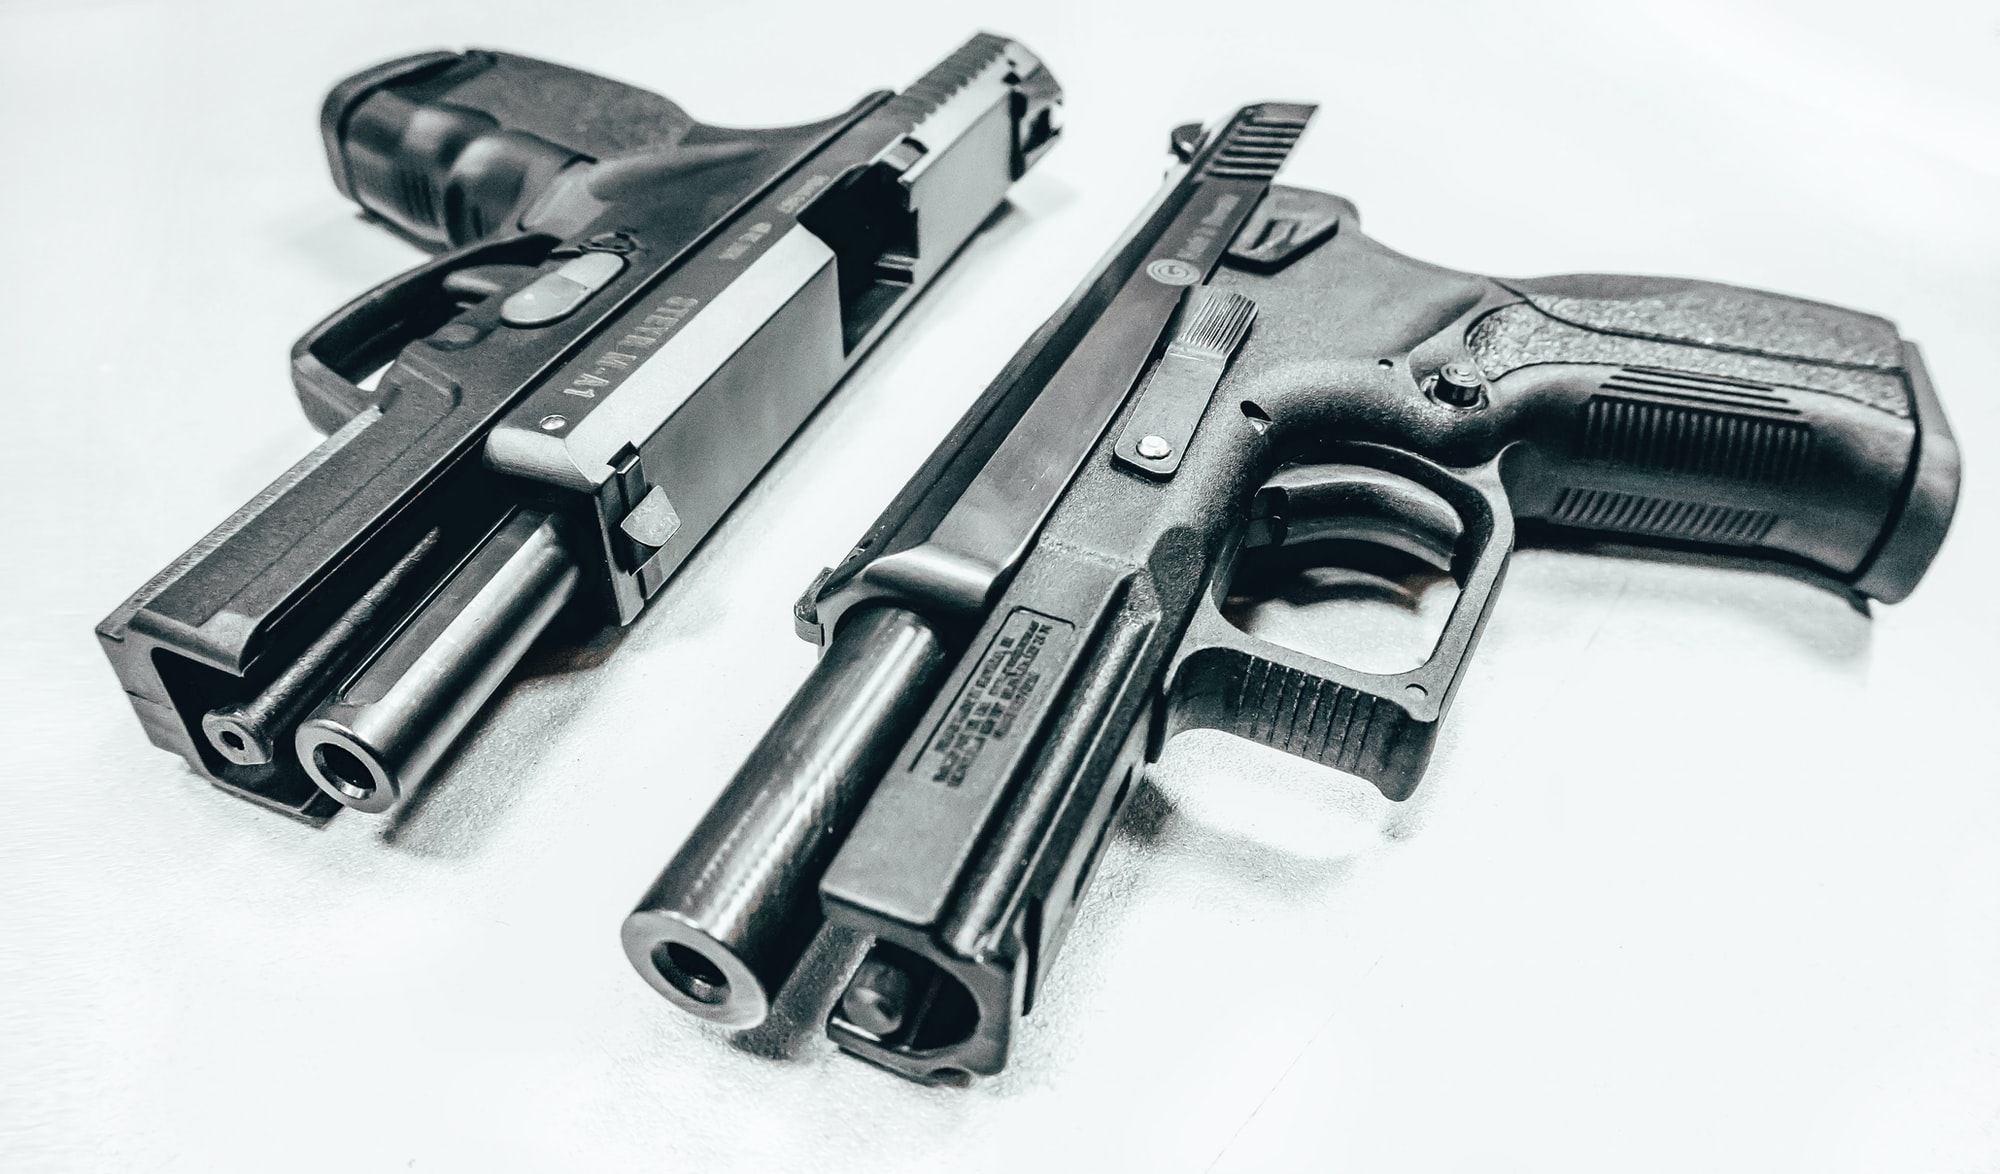 The Use of Firearms to Fight Crime and Delinquency